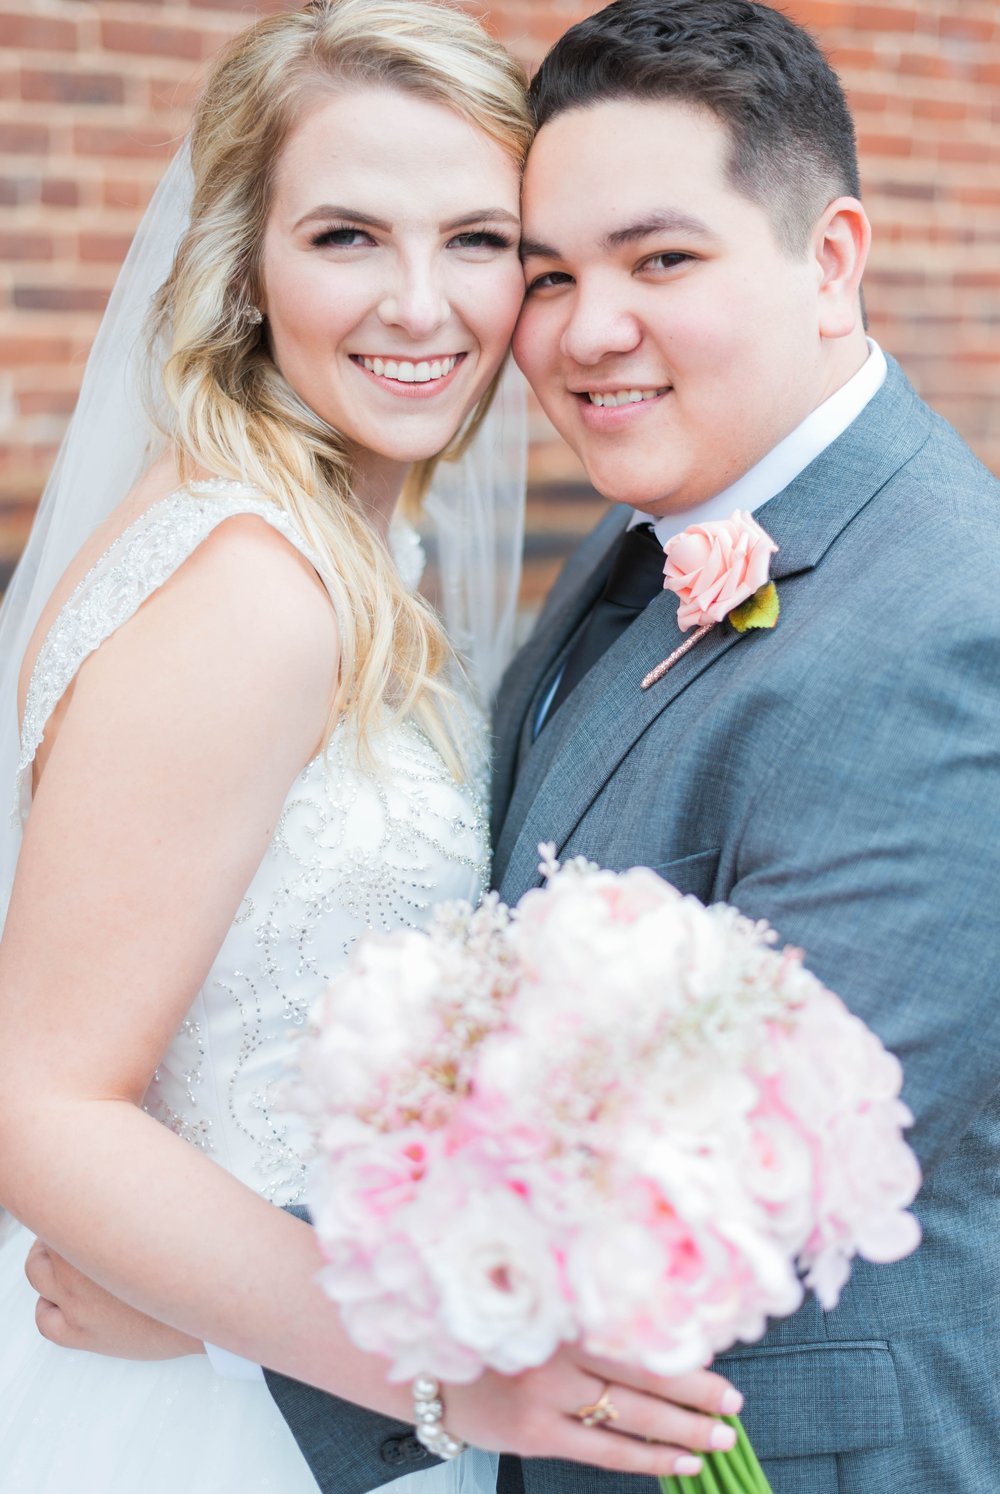 LynchburgVirginia_Virginiaweddingphotographer_michaelkim 28.jpg